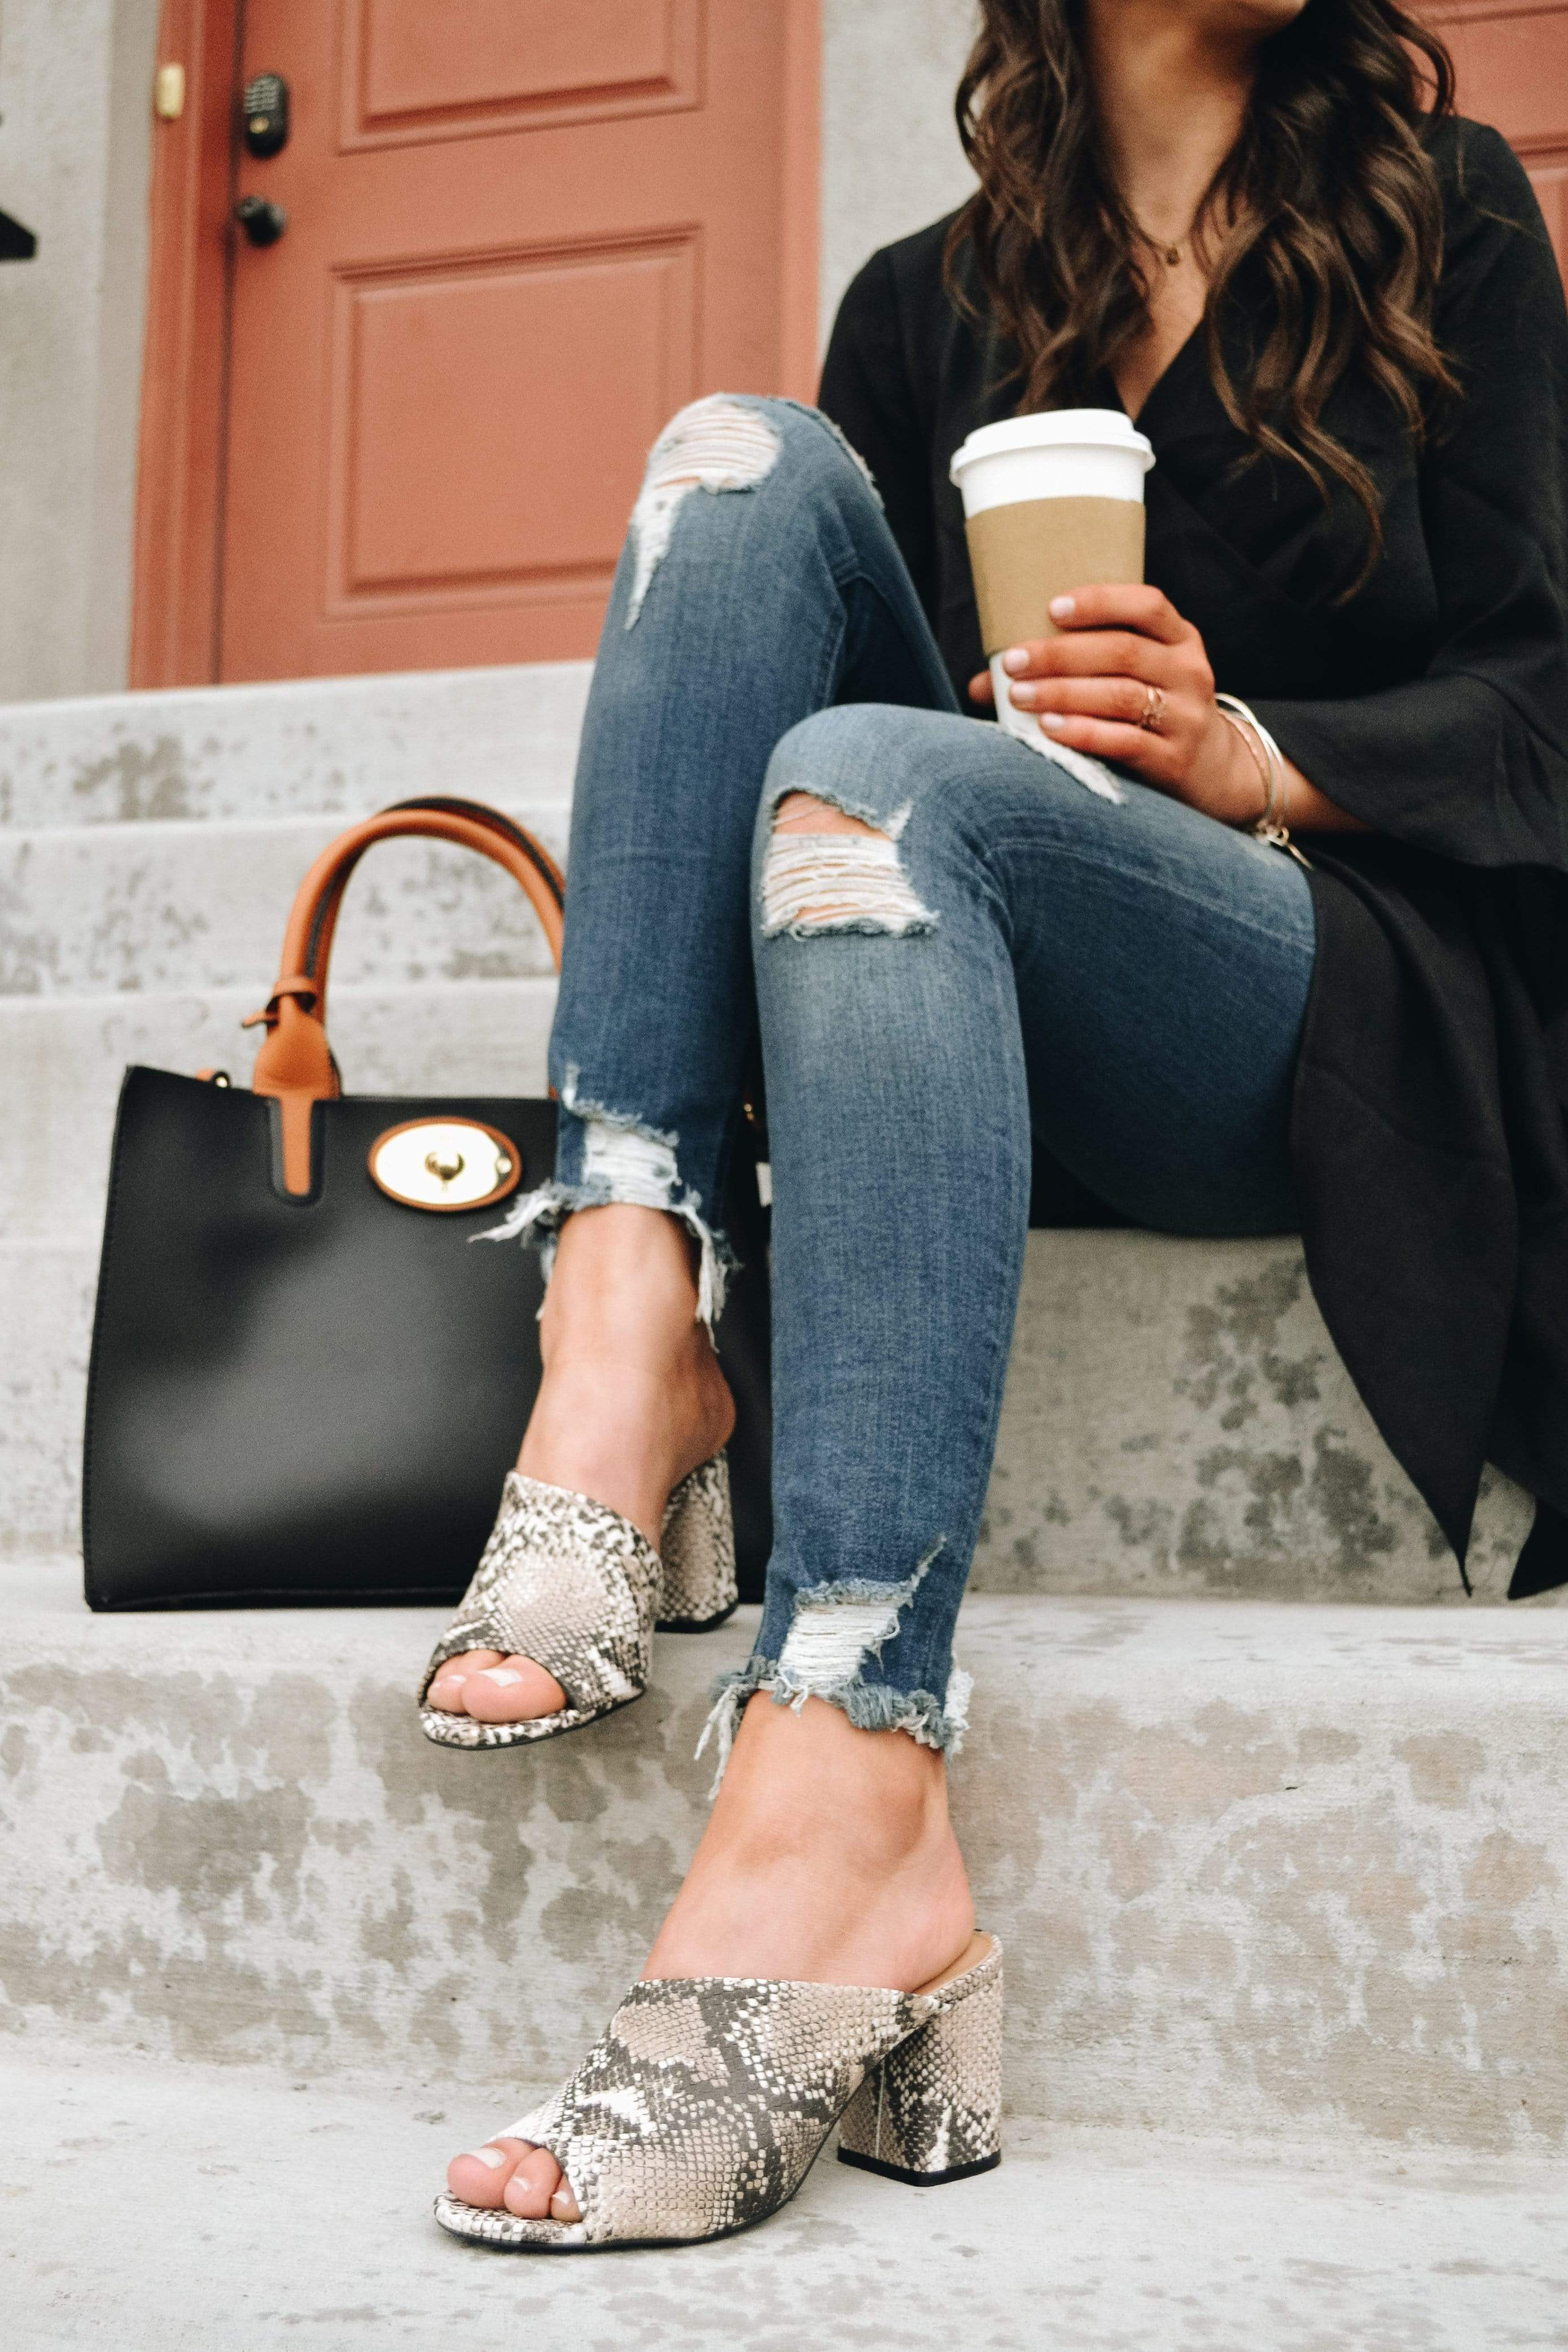 Model sitting on concrete steps holding coffee and wearing python heels